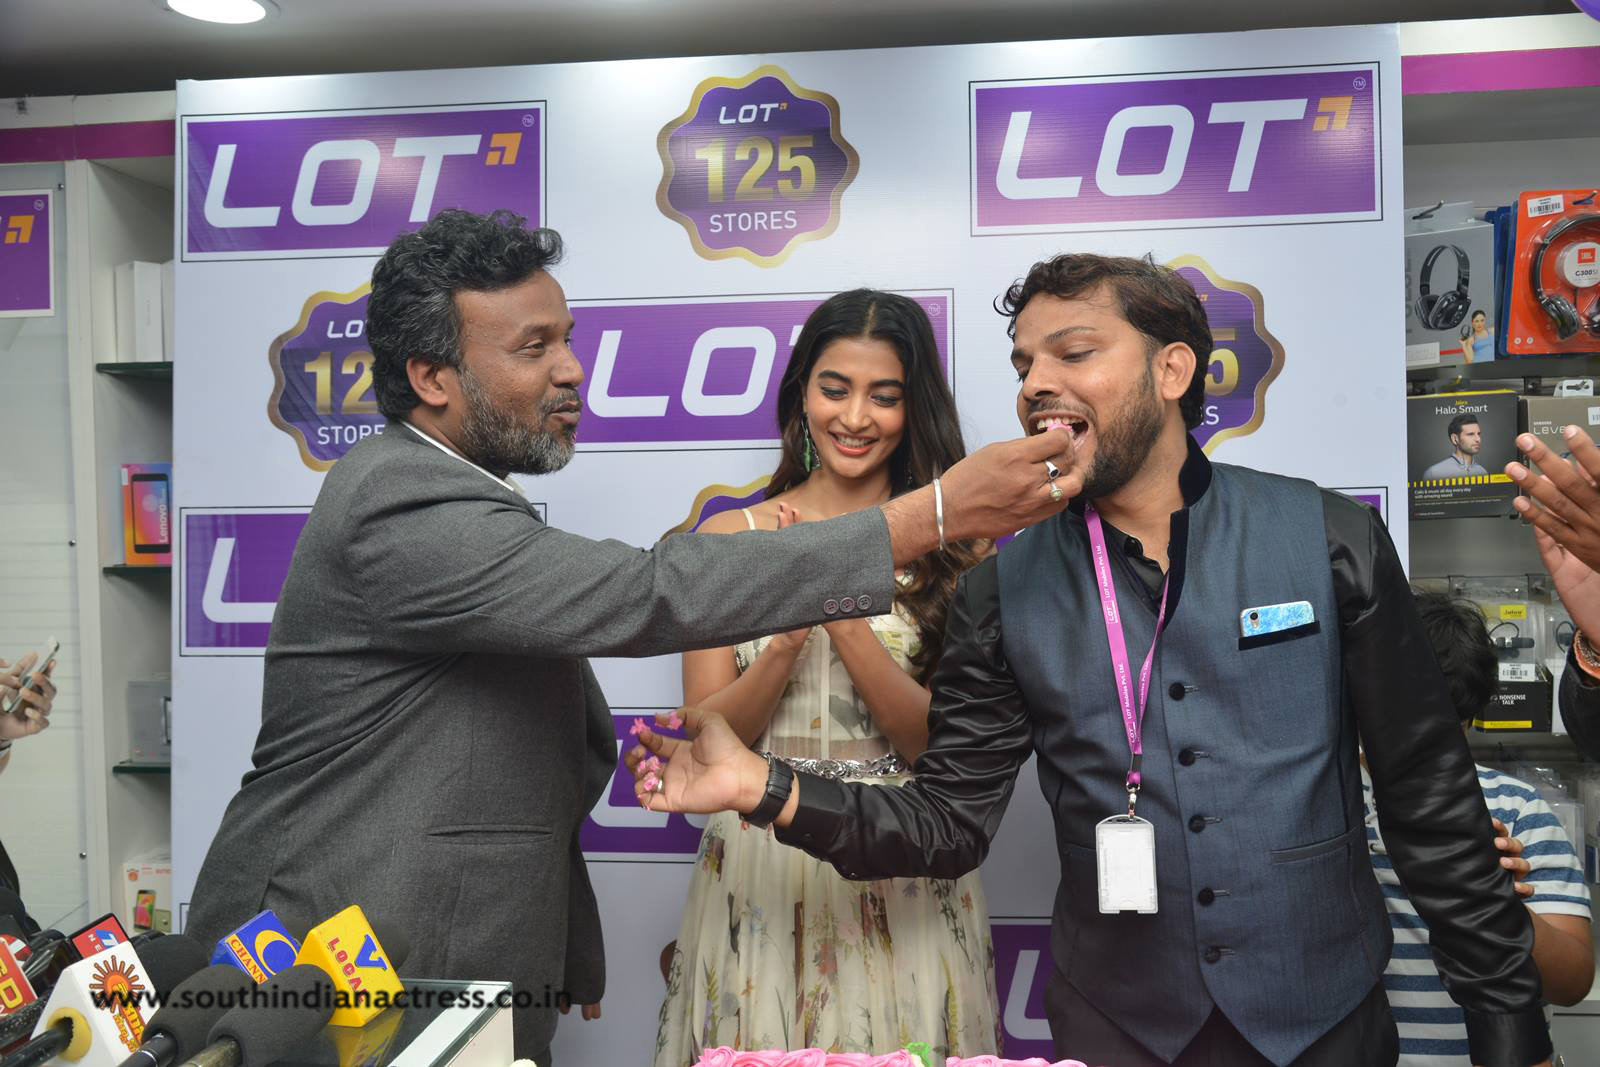 Pooja Hegde launches Lot Mobile Store in Vijayawada - South Indian